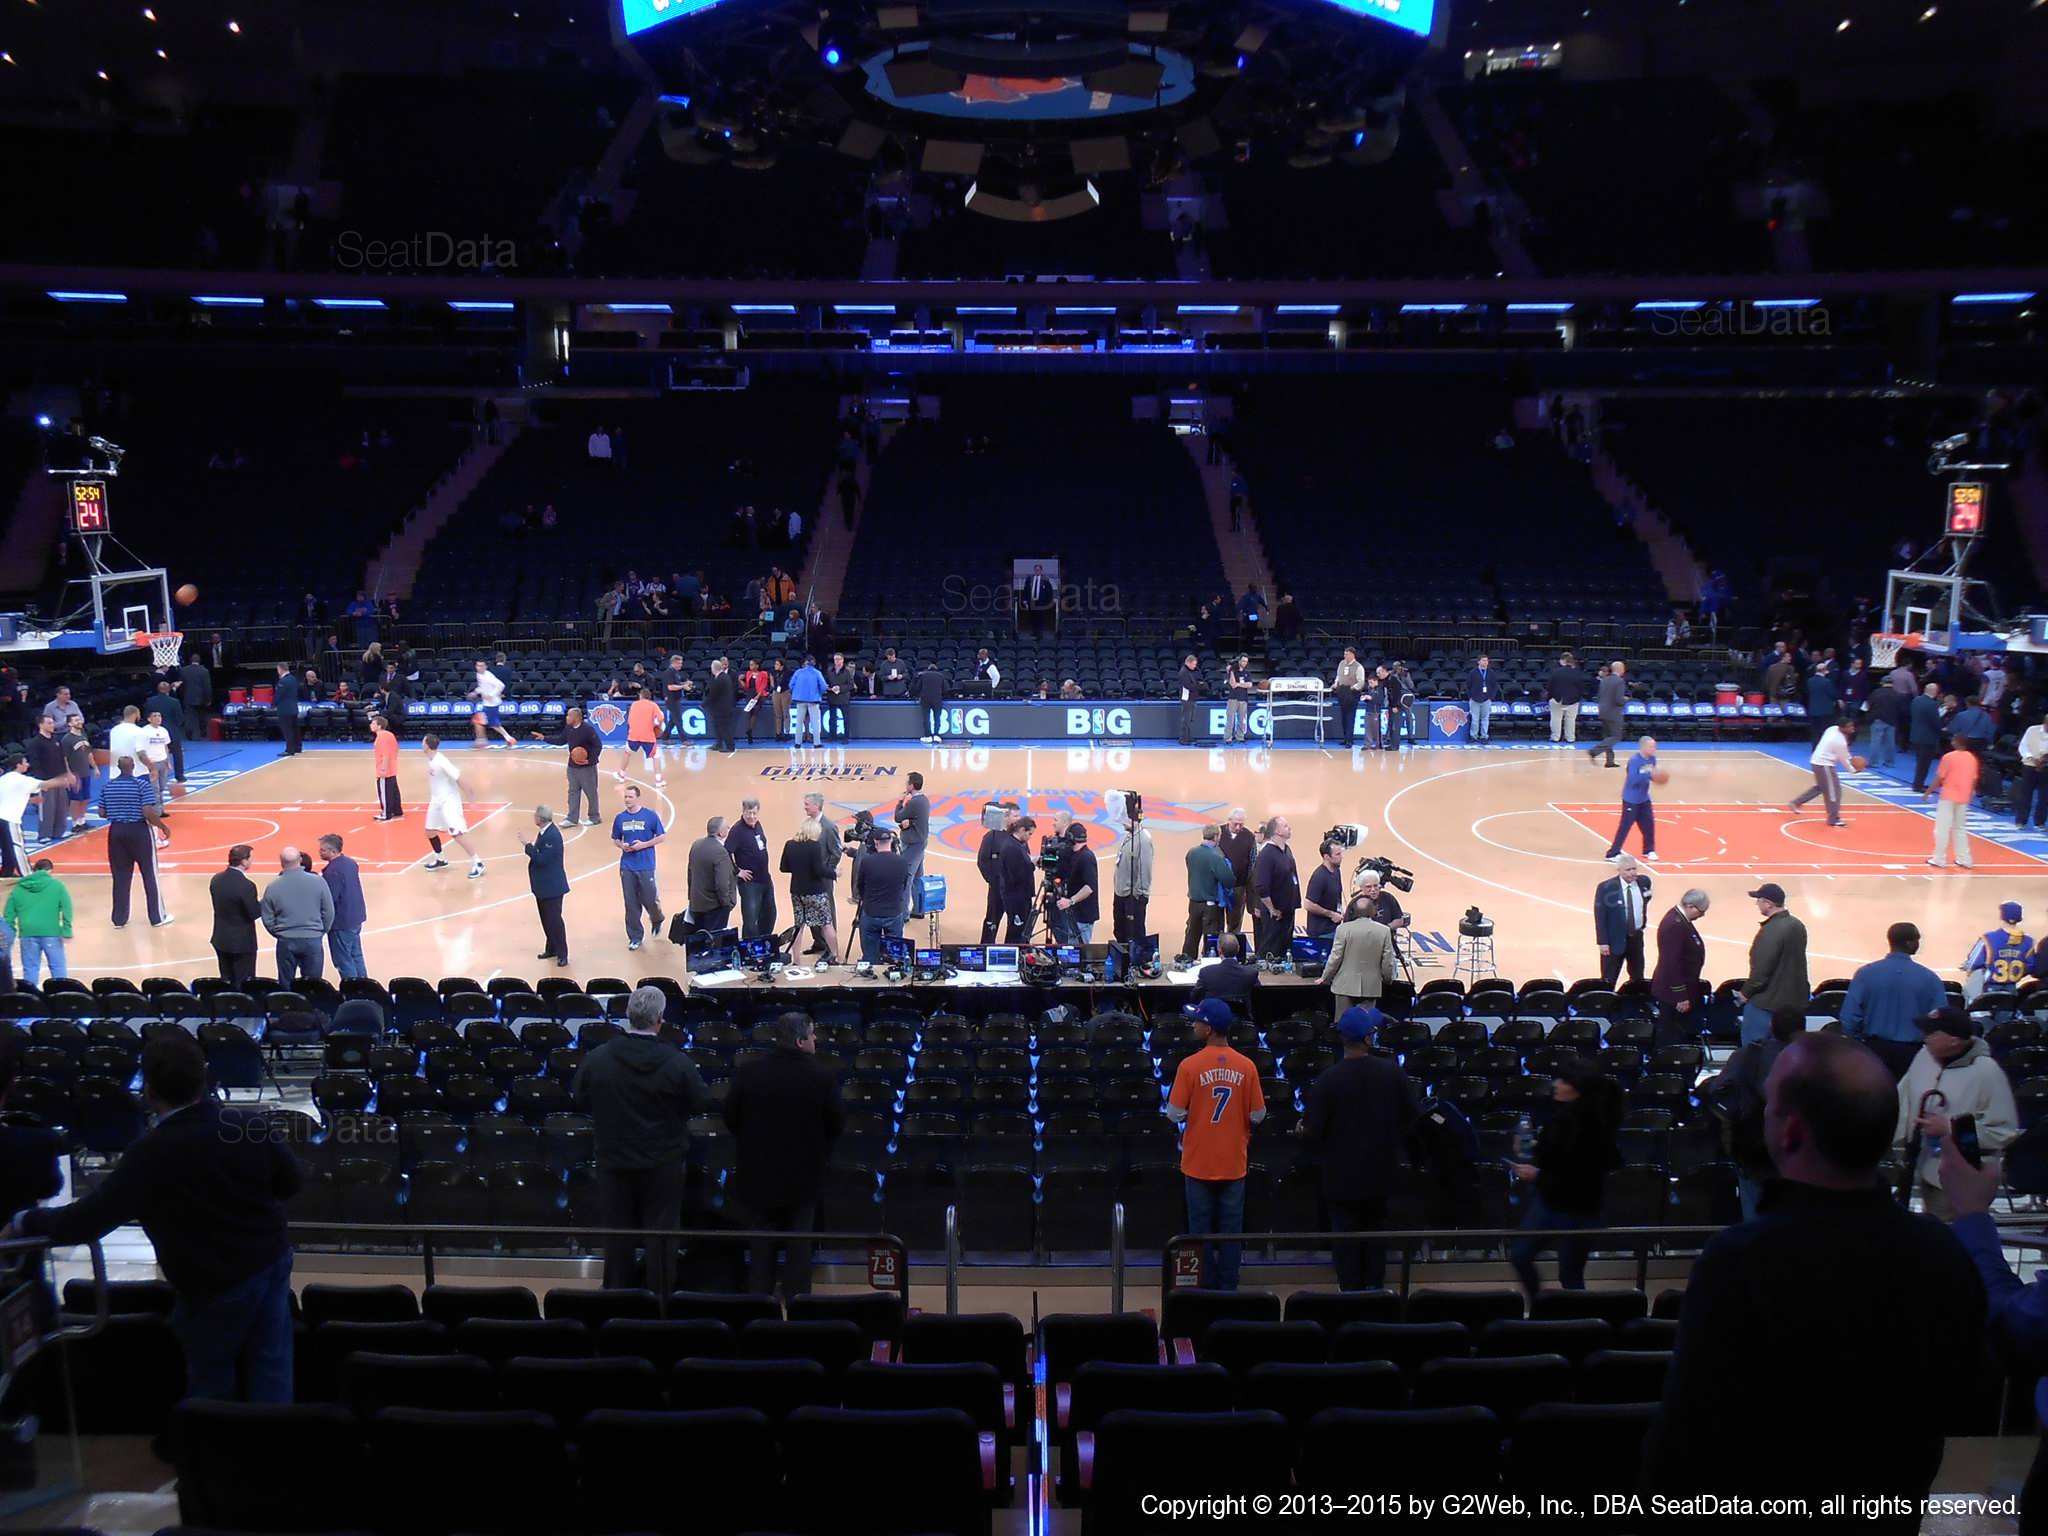 Seat view from section 117 at Madison Square Garden, home of the New York Knicks.